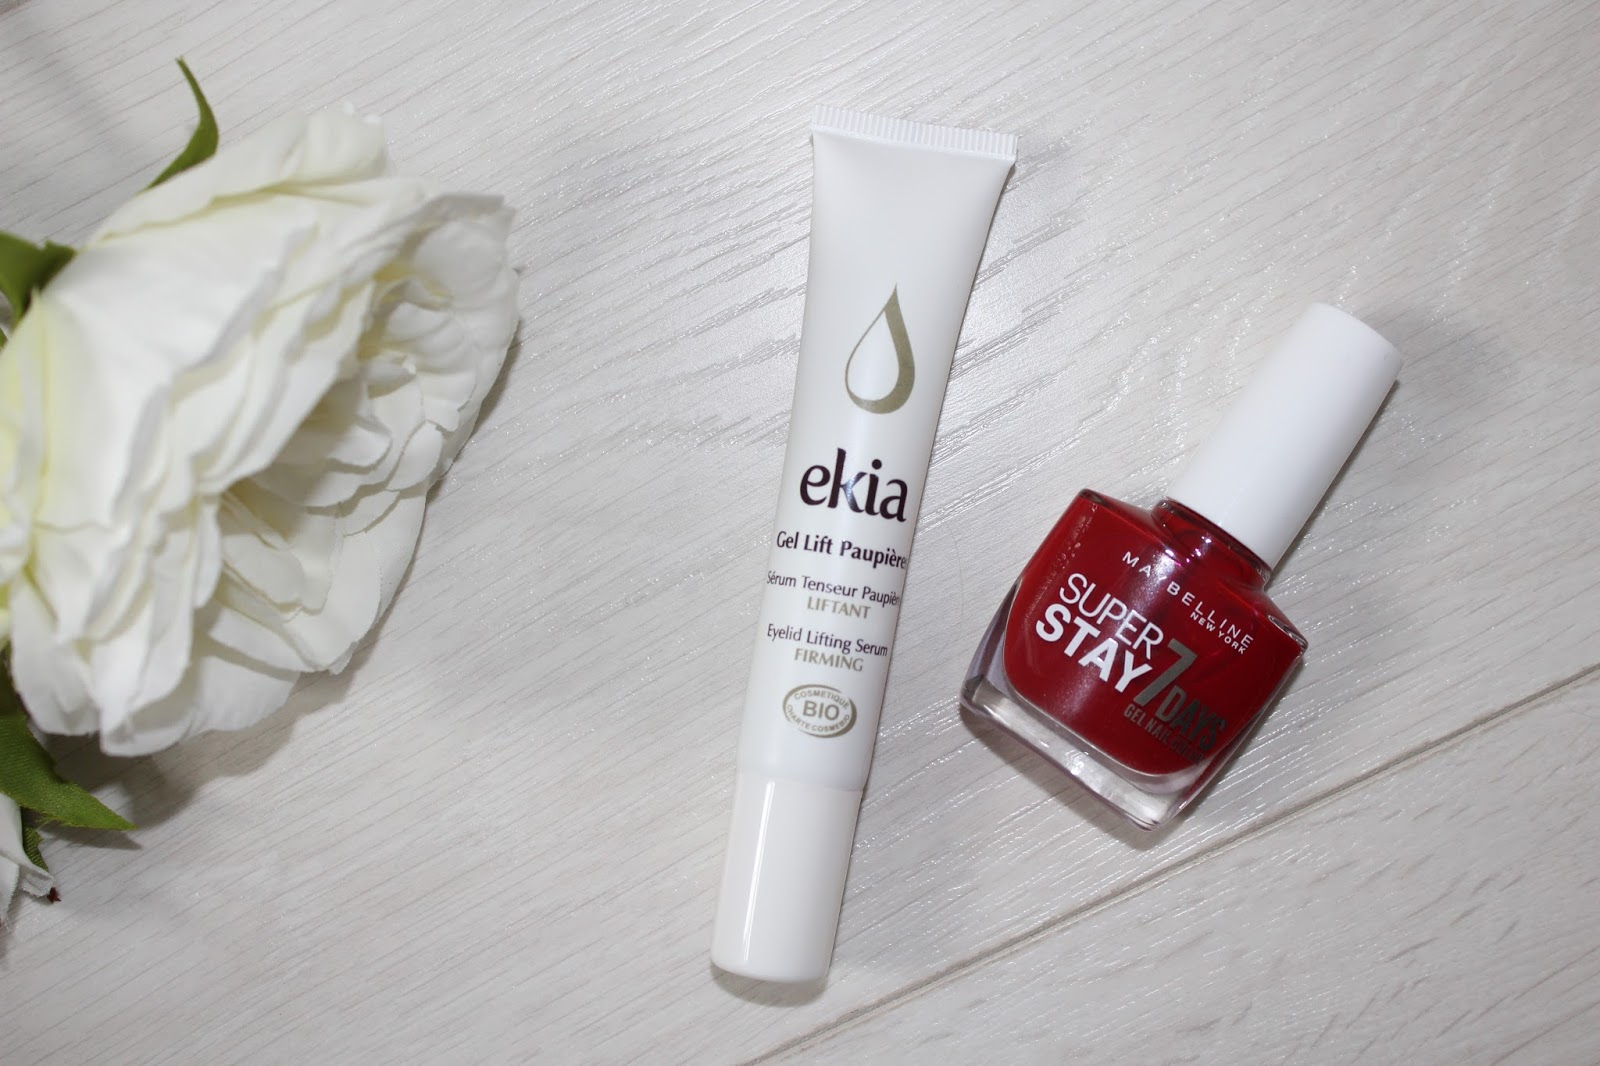 September Favourites 8 - Ekia Eyelid Lifting Serum